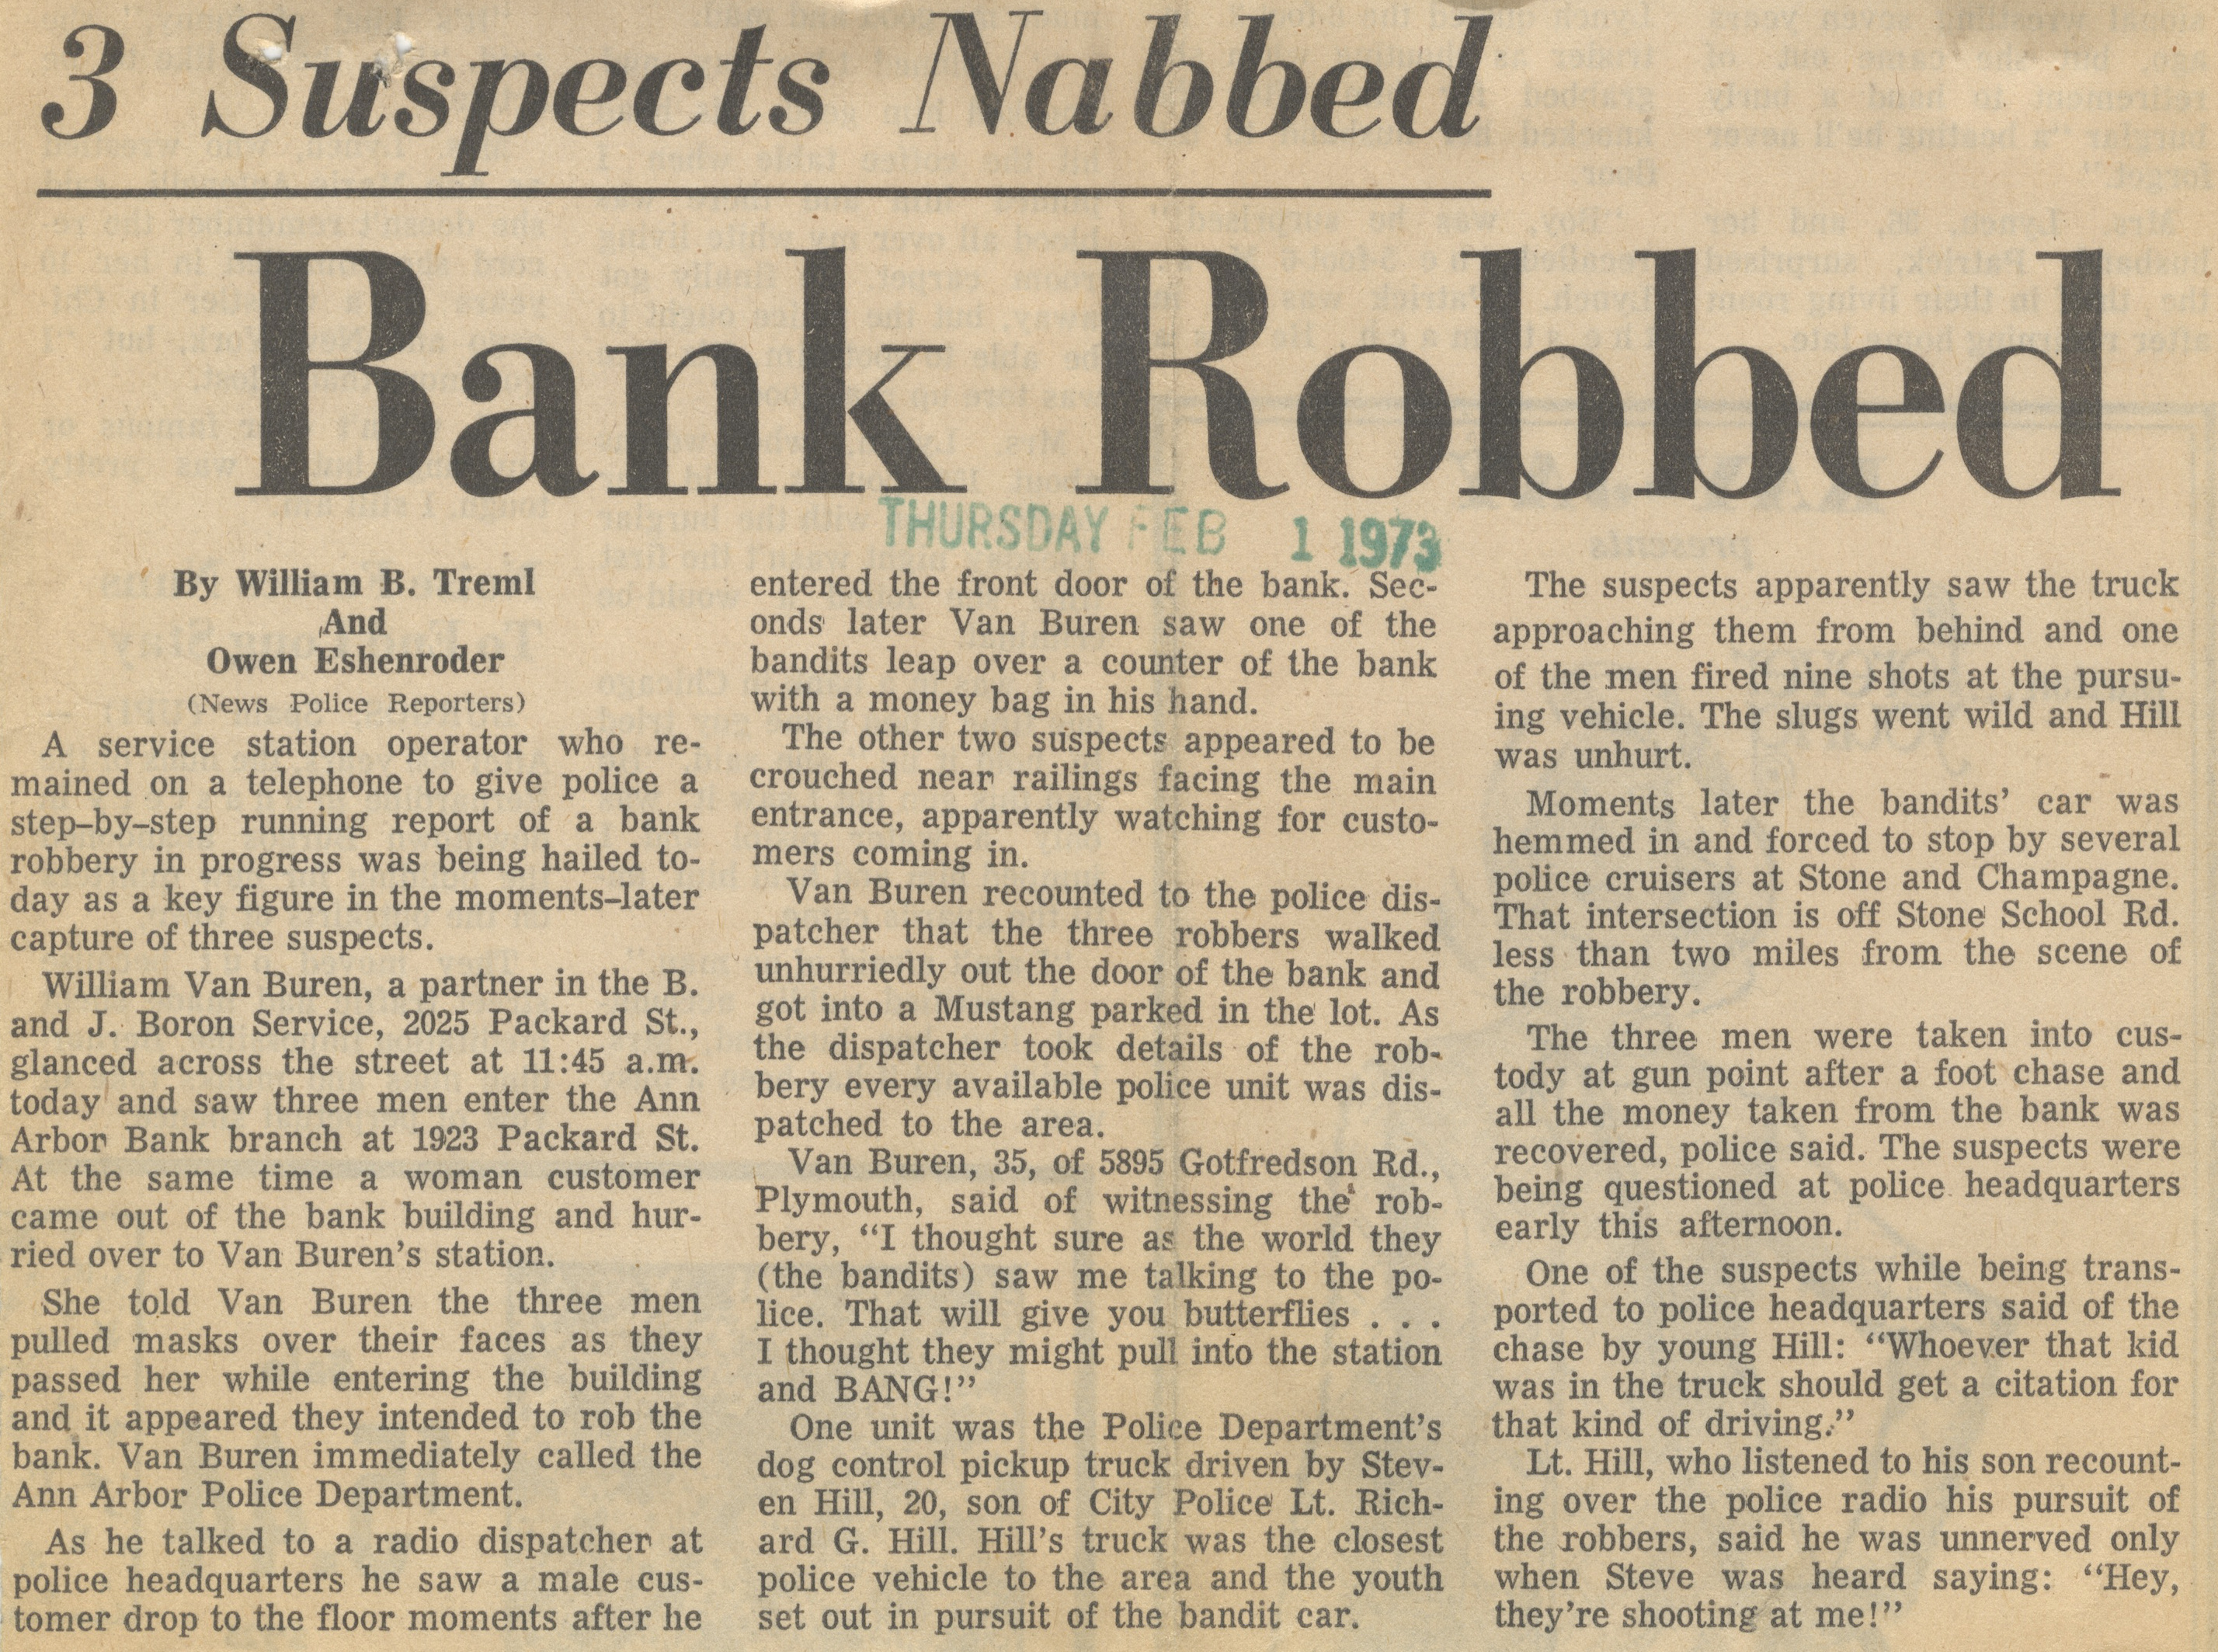 Bank Robbed image